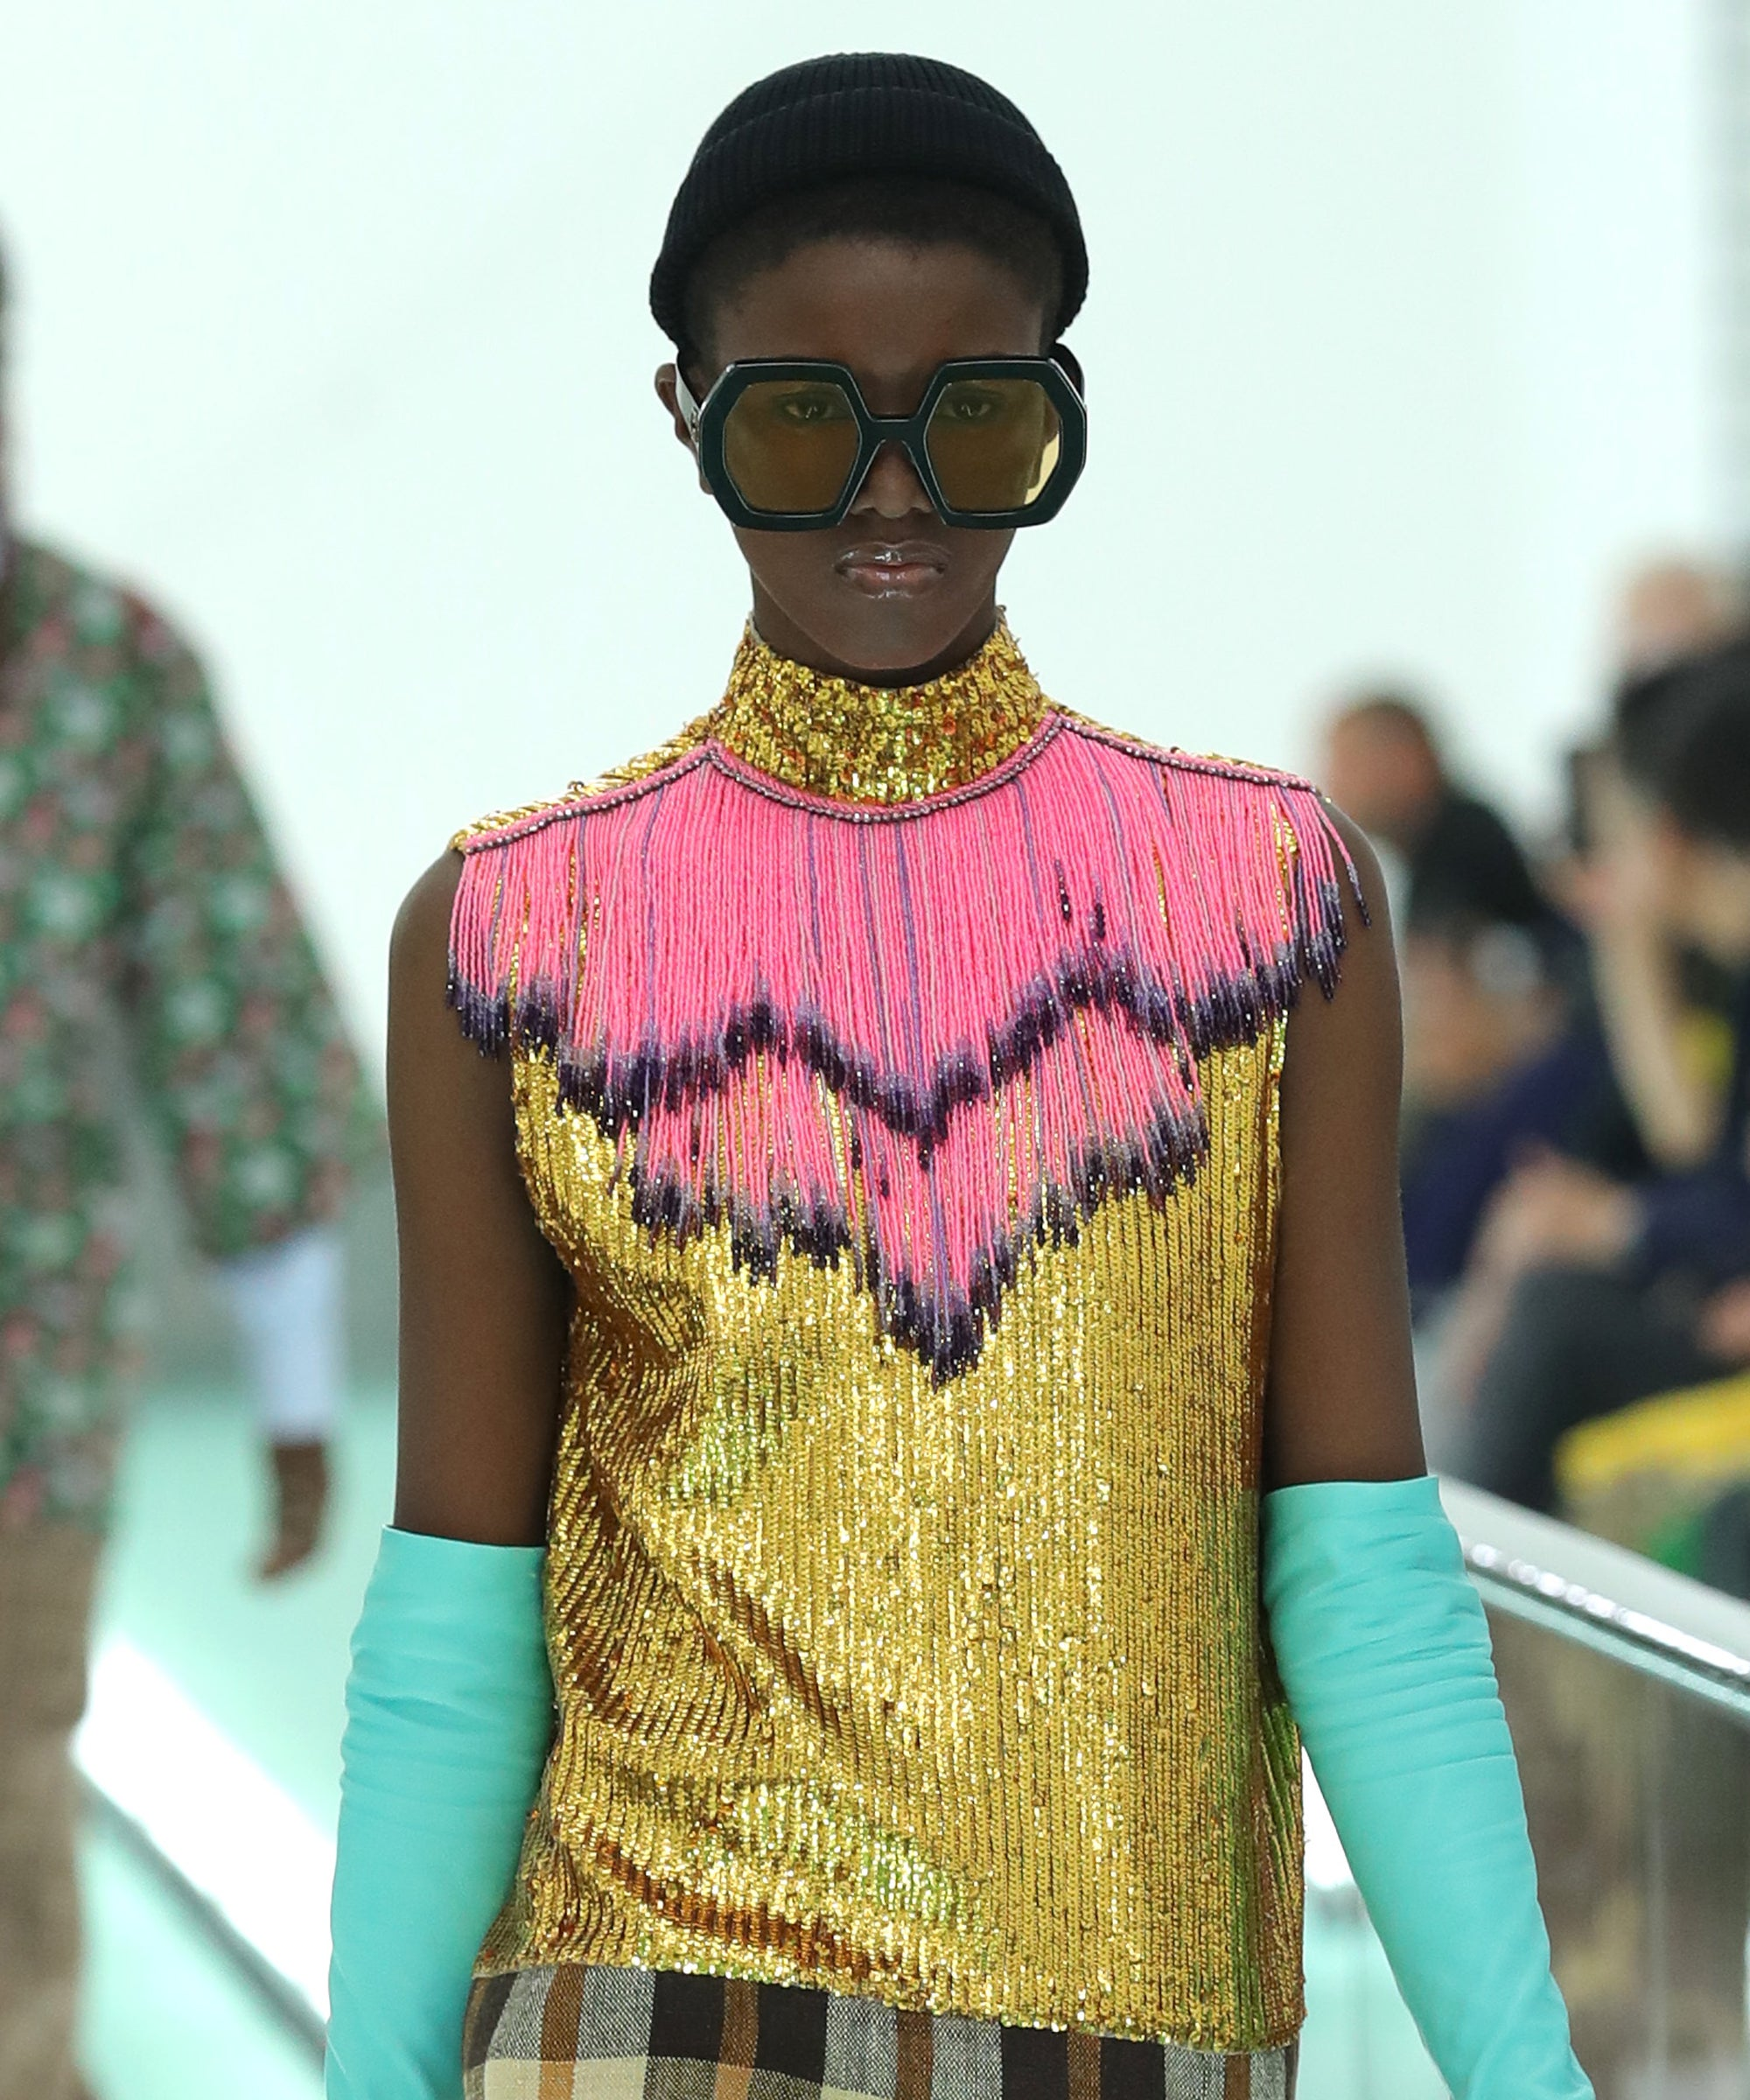 The RealReal Joins Gucci's Industry-Disrupting Sustainability Challenge